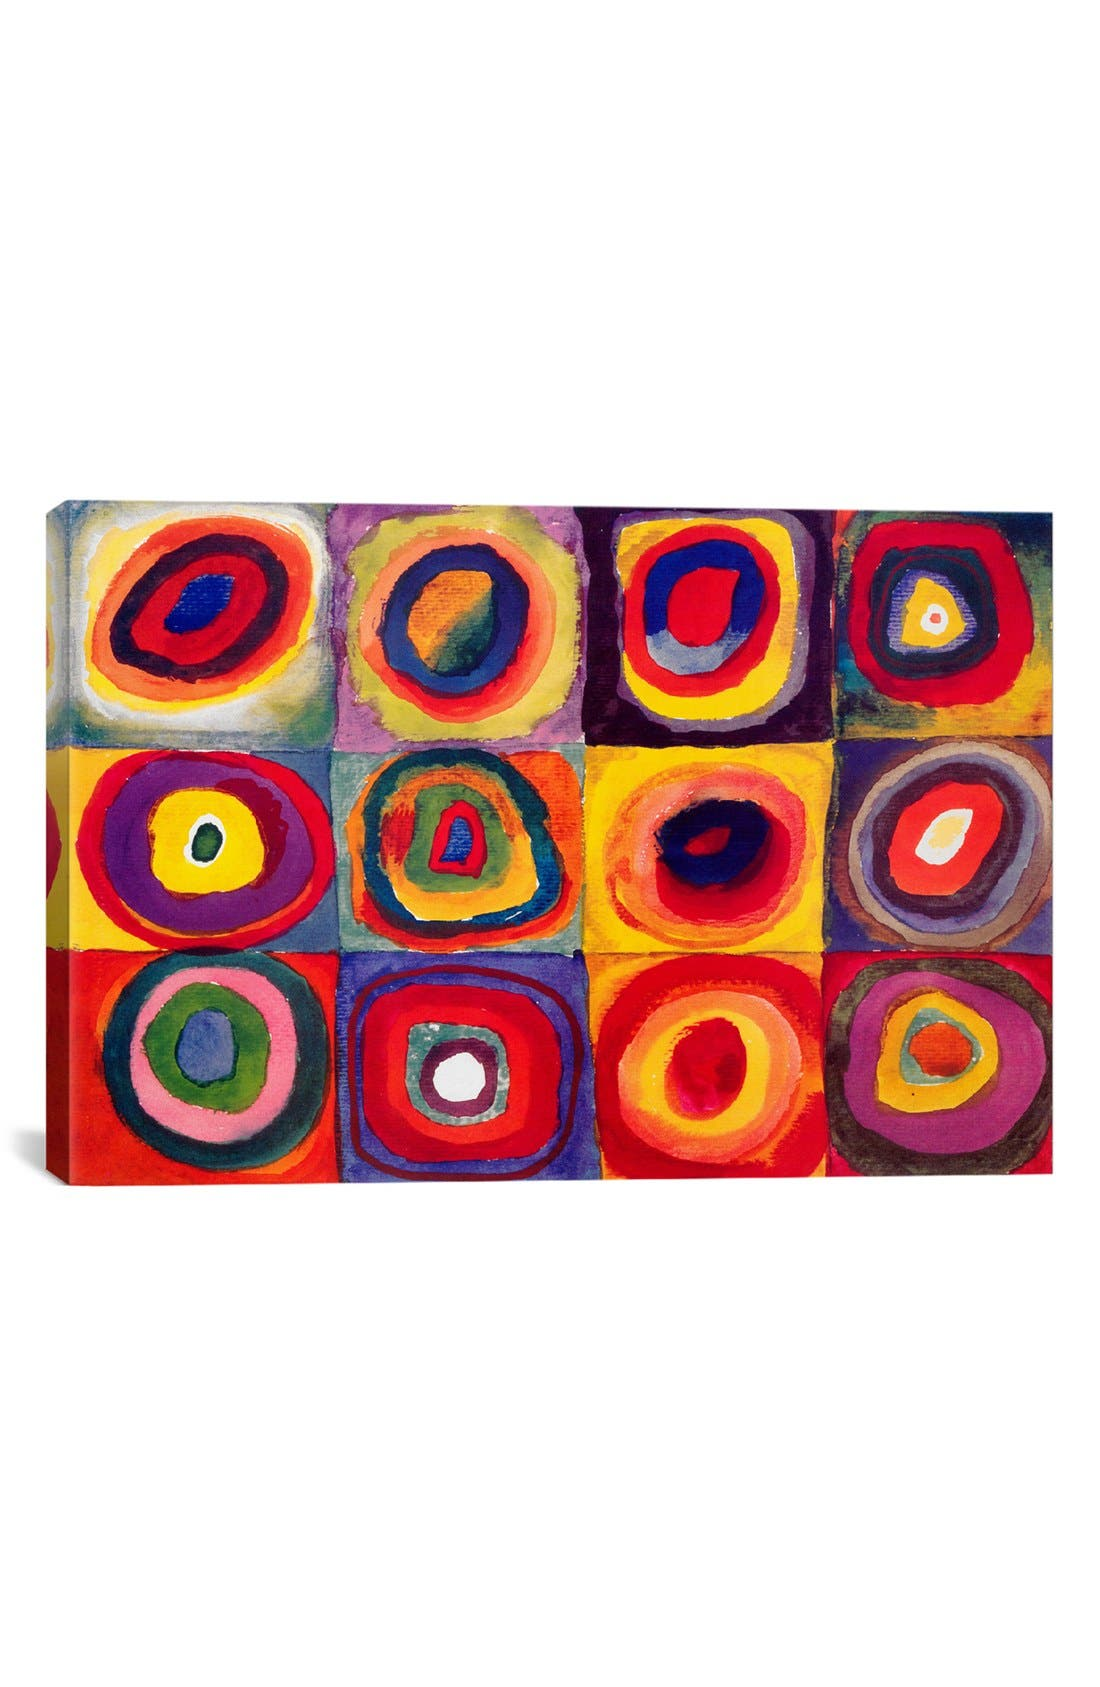 'Squares With Concentric Circles - Wassily Kandinsky' Giclée Print Canvas Art,                             Main thumbnail 1, color,                             600